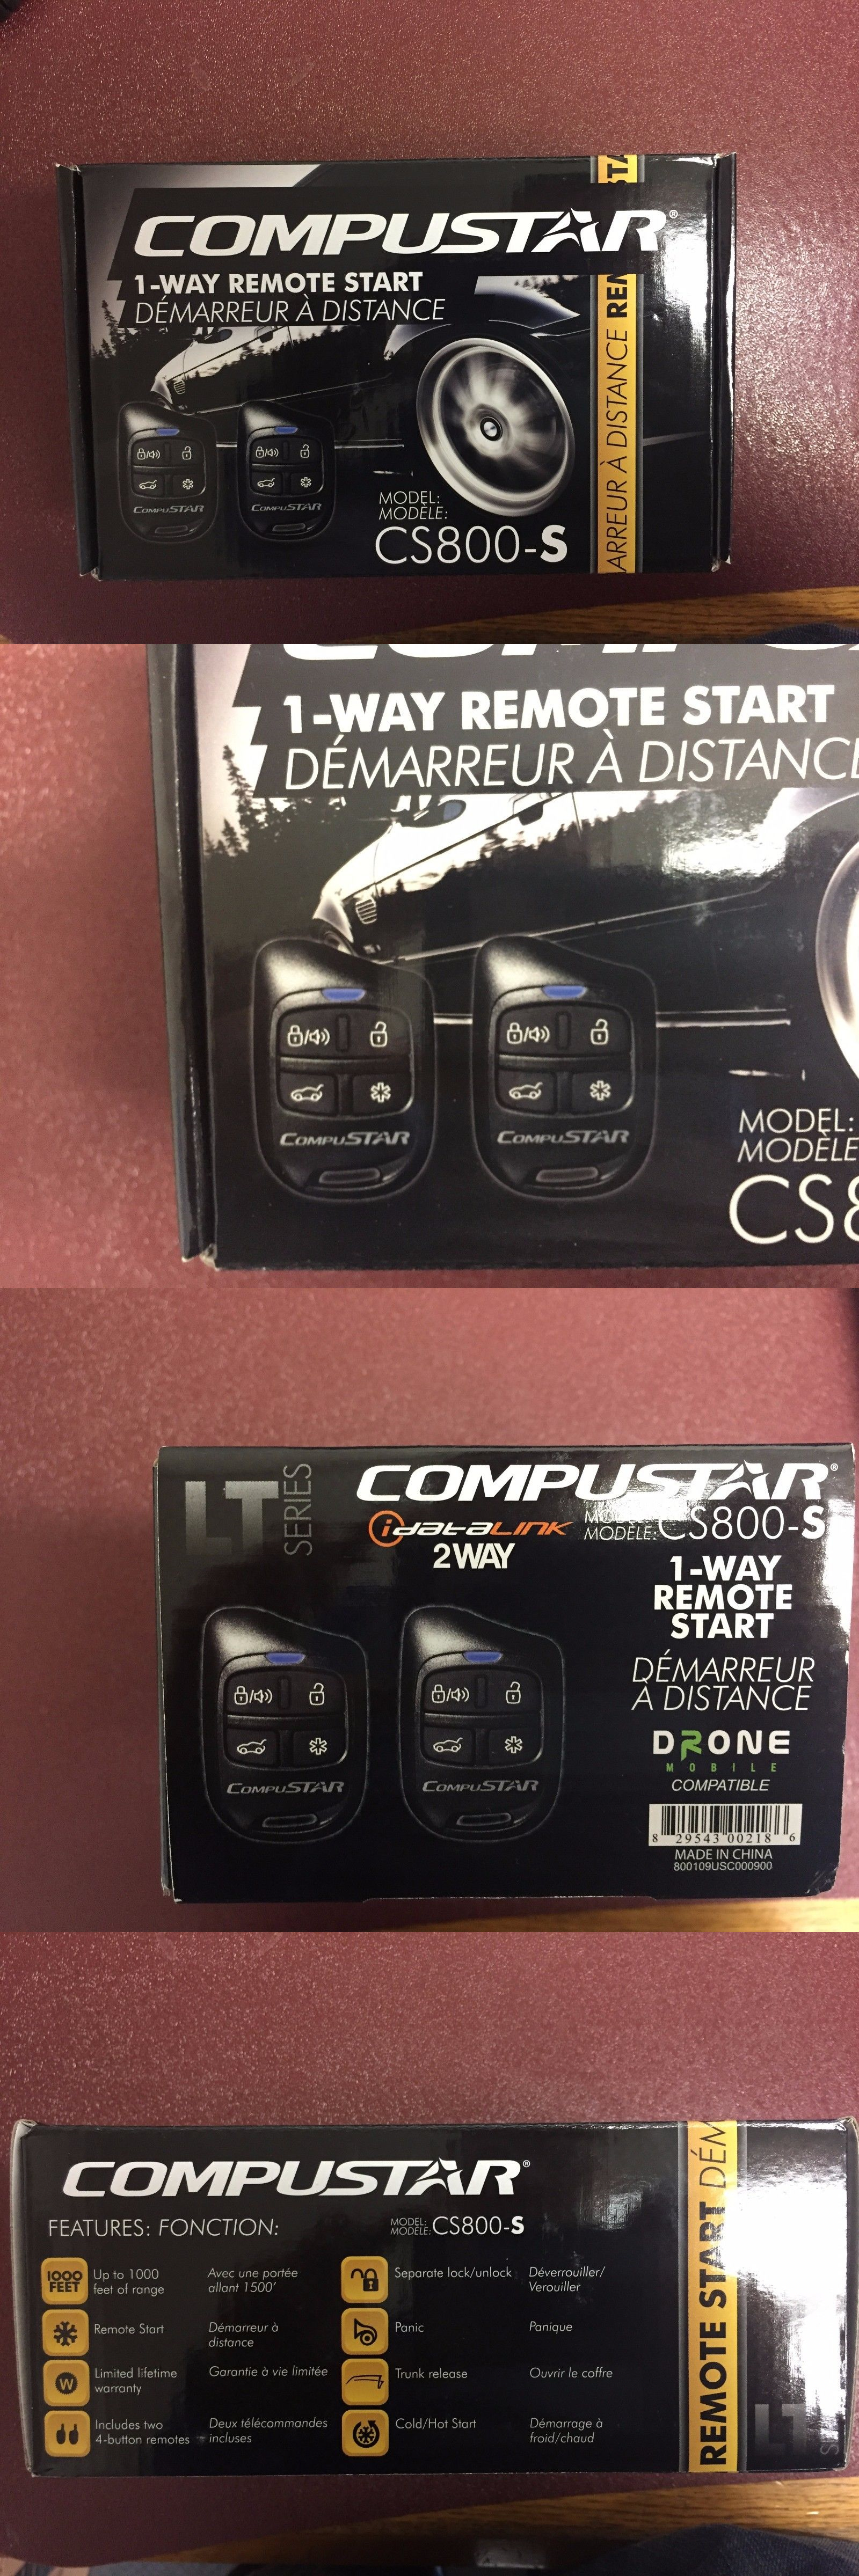 Remote Start and Entry Systems: Compustar Cs800-S 1-Way Remote Start Brand New!! -> BUY IT NOW ONLY: $40.5 on eBay!